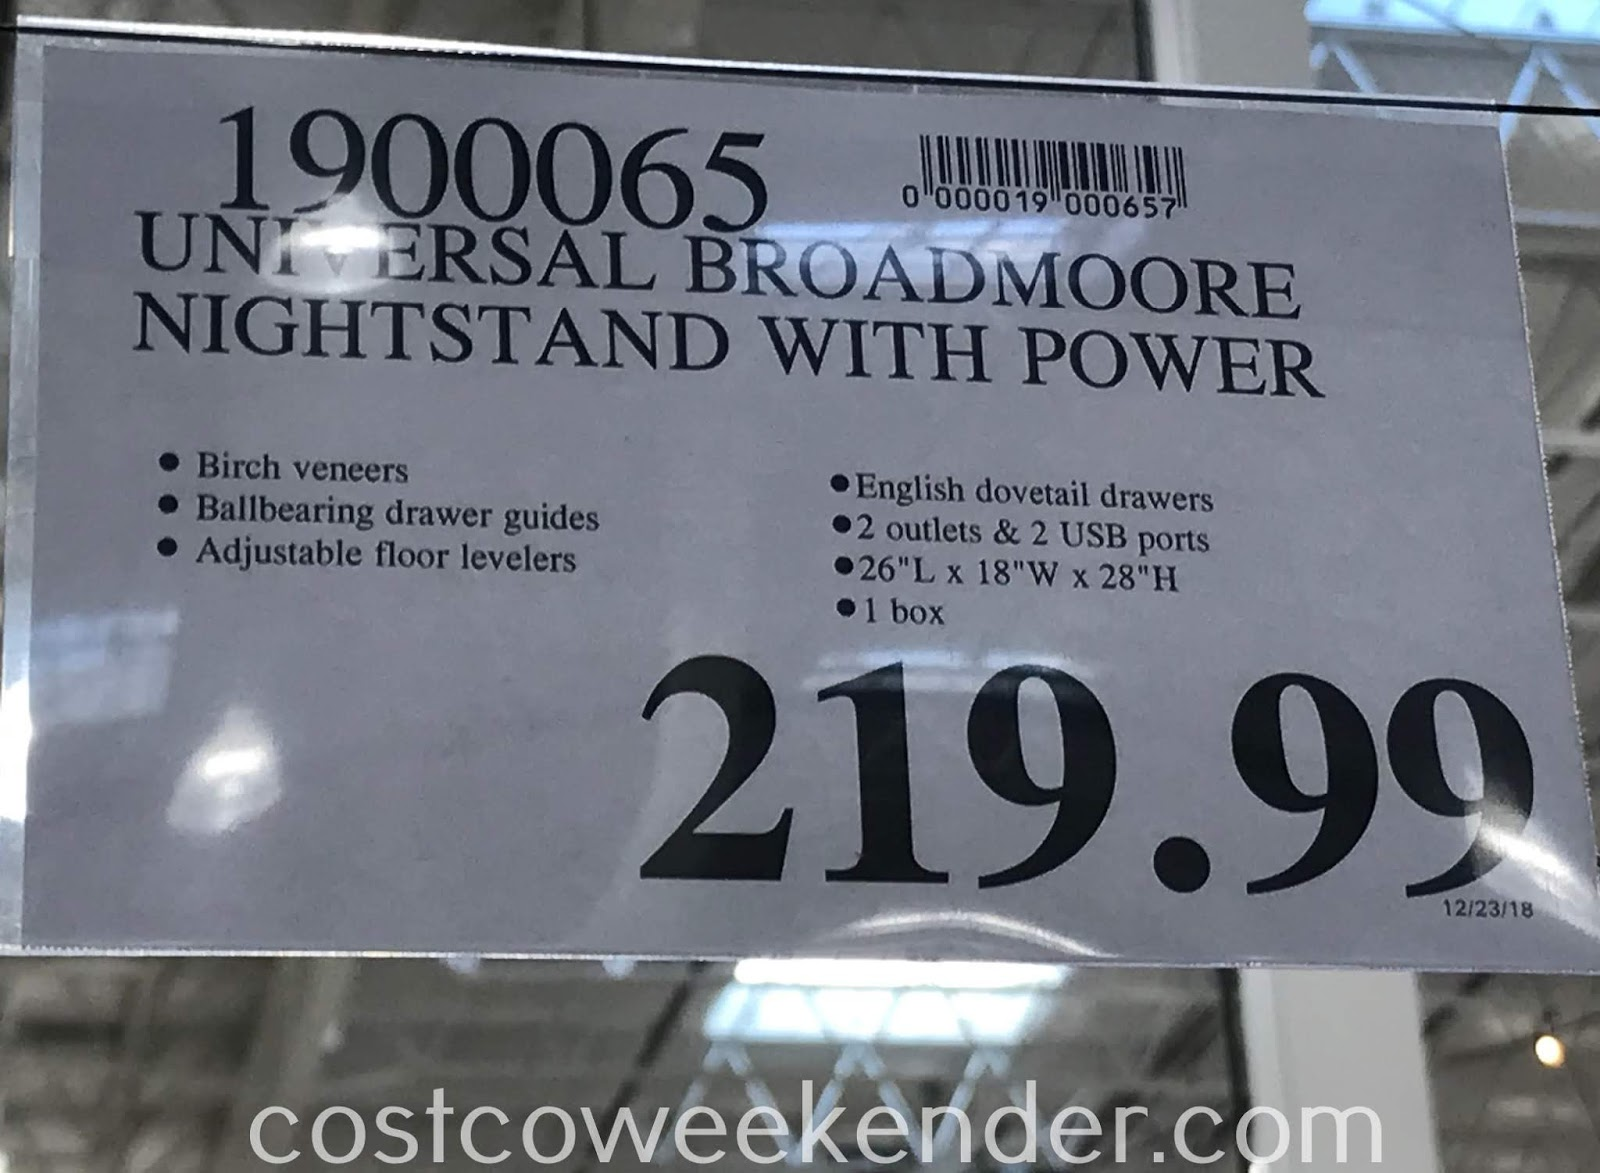 Deal for the Universal Broadmoore Furniture Nightstand with Power at Costco